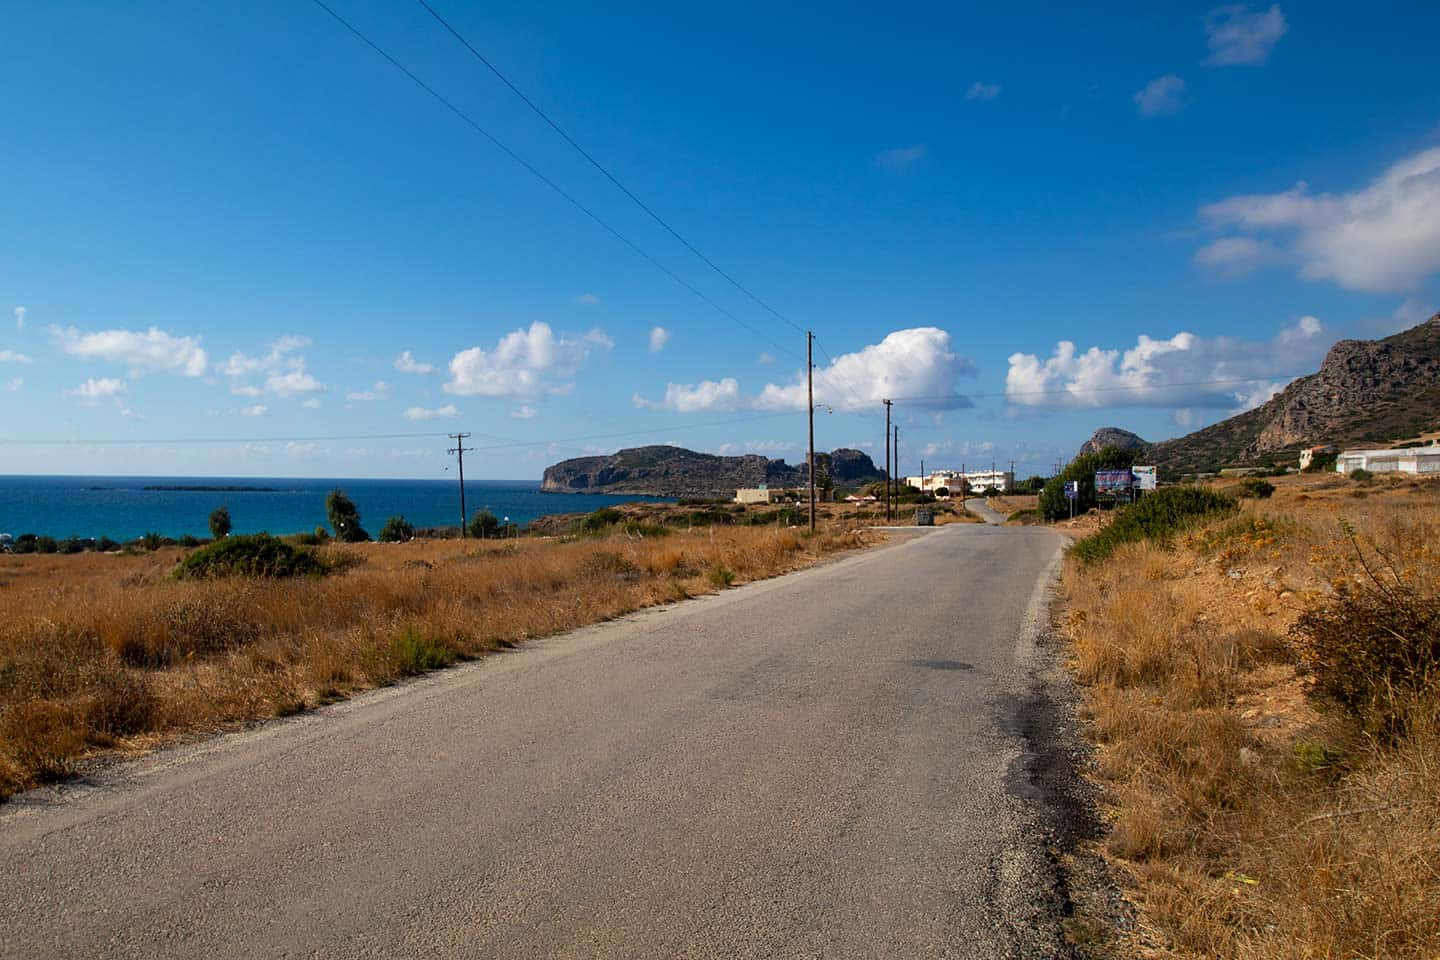 Image of the road in Falassarna Crete Greece